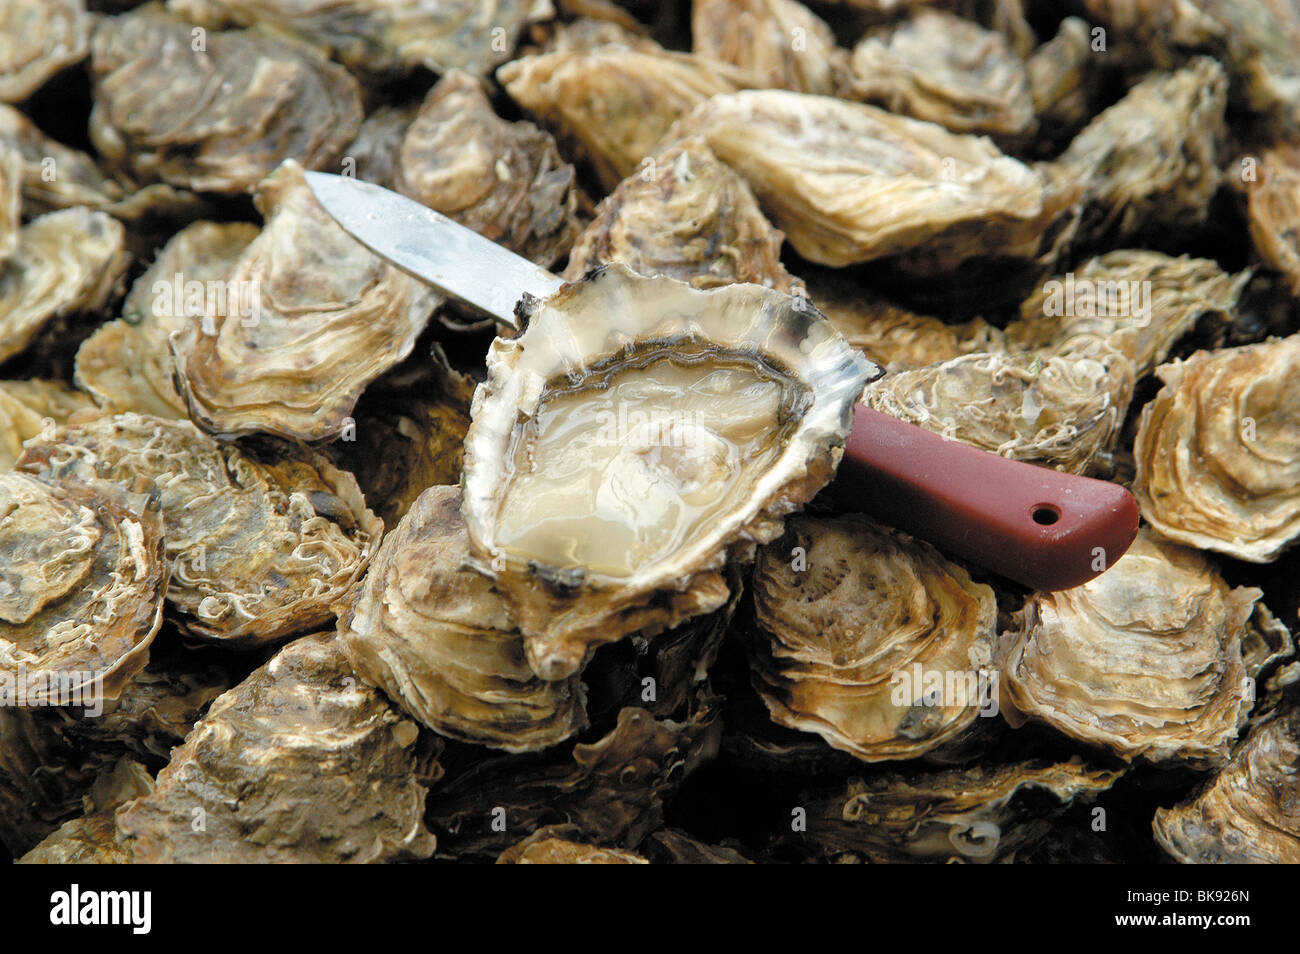 Fresh oyster - Stock Image